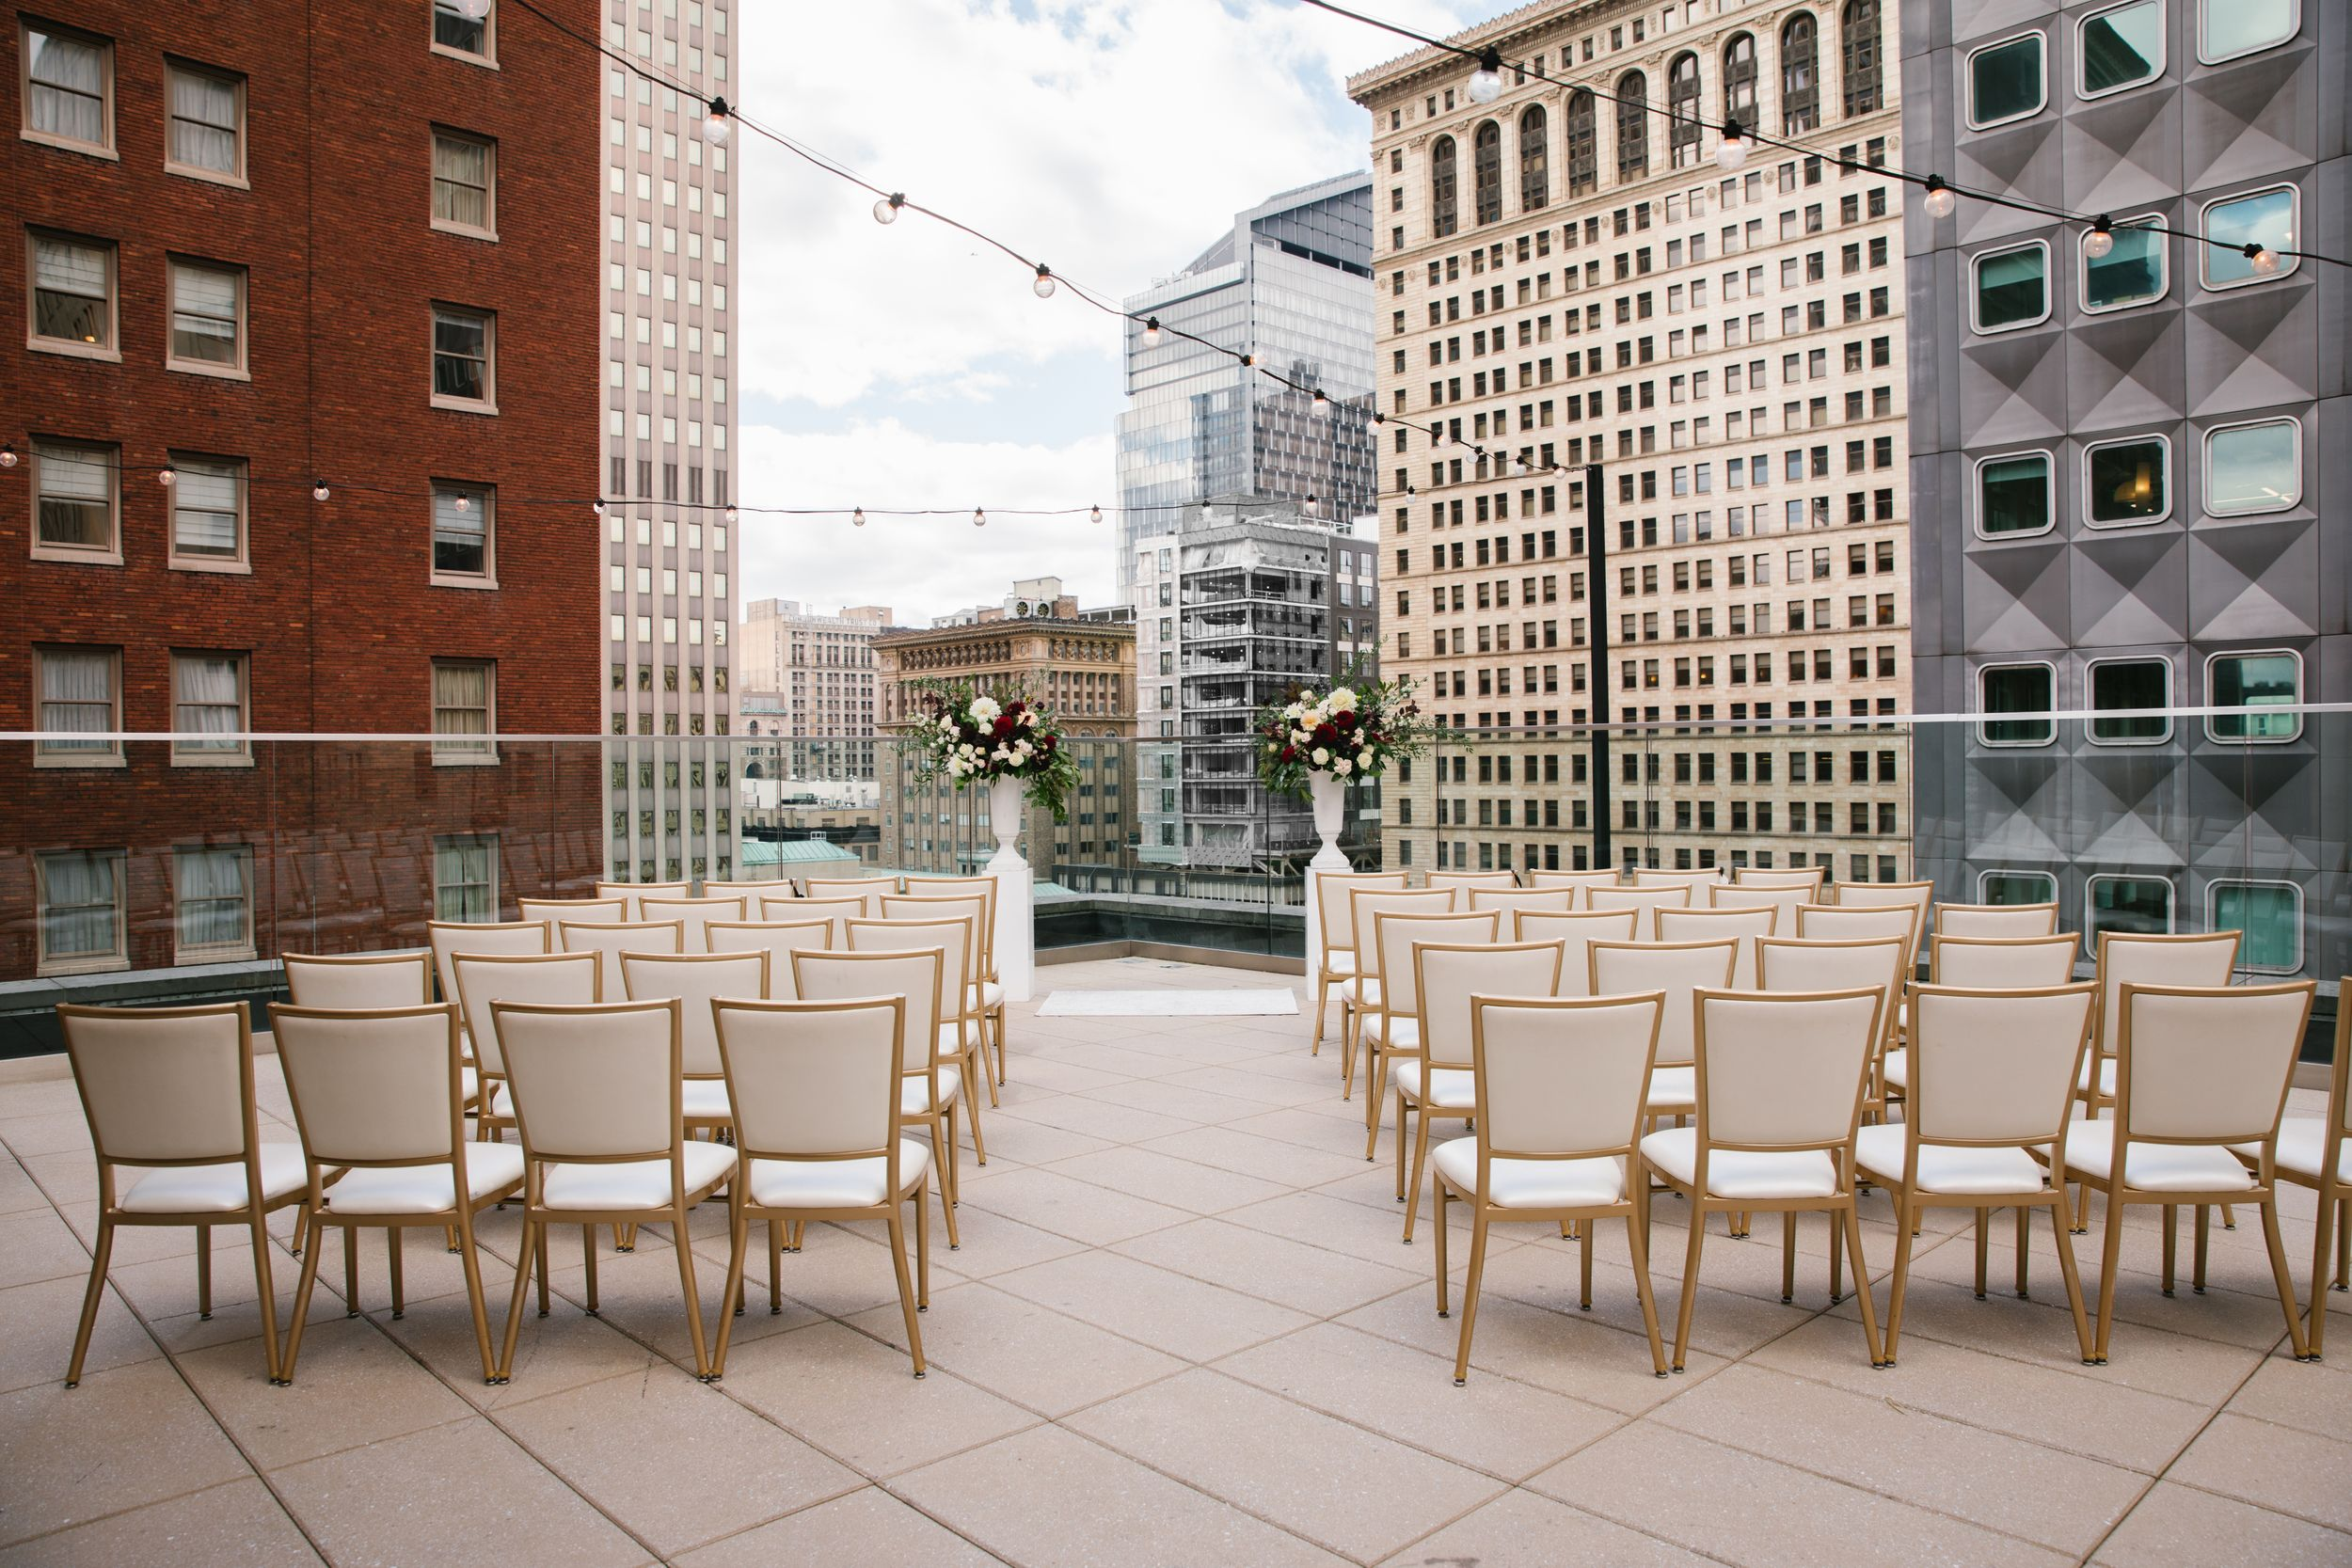 rooftop ceremony space overlooking the city with high rise buildings with string lights, column planters and gold chairs